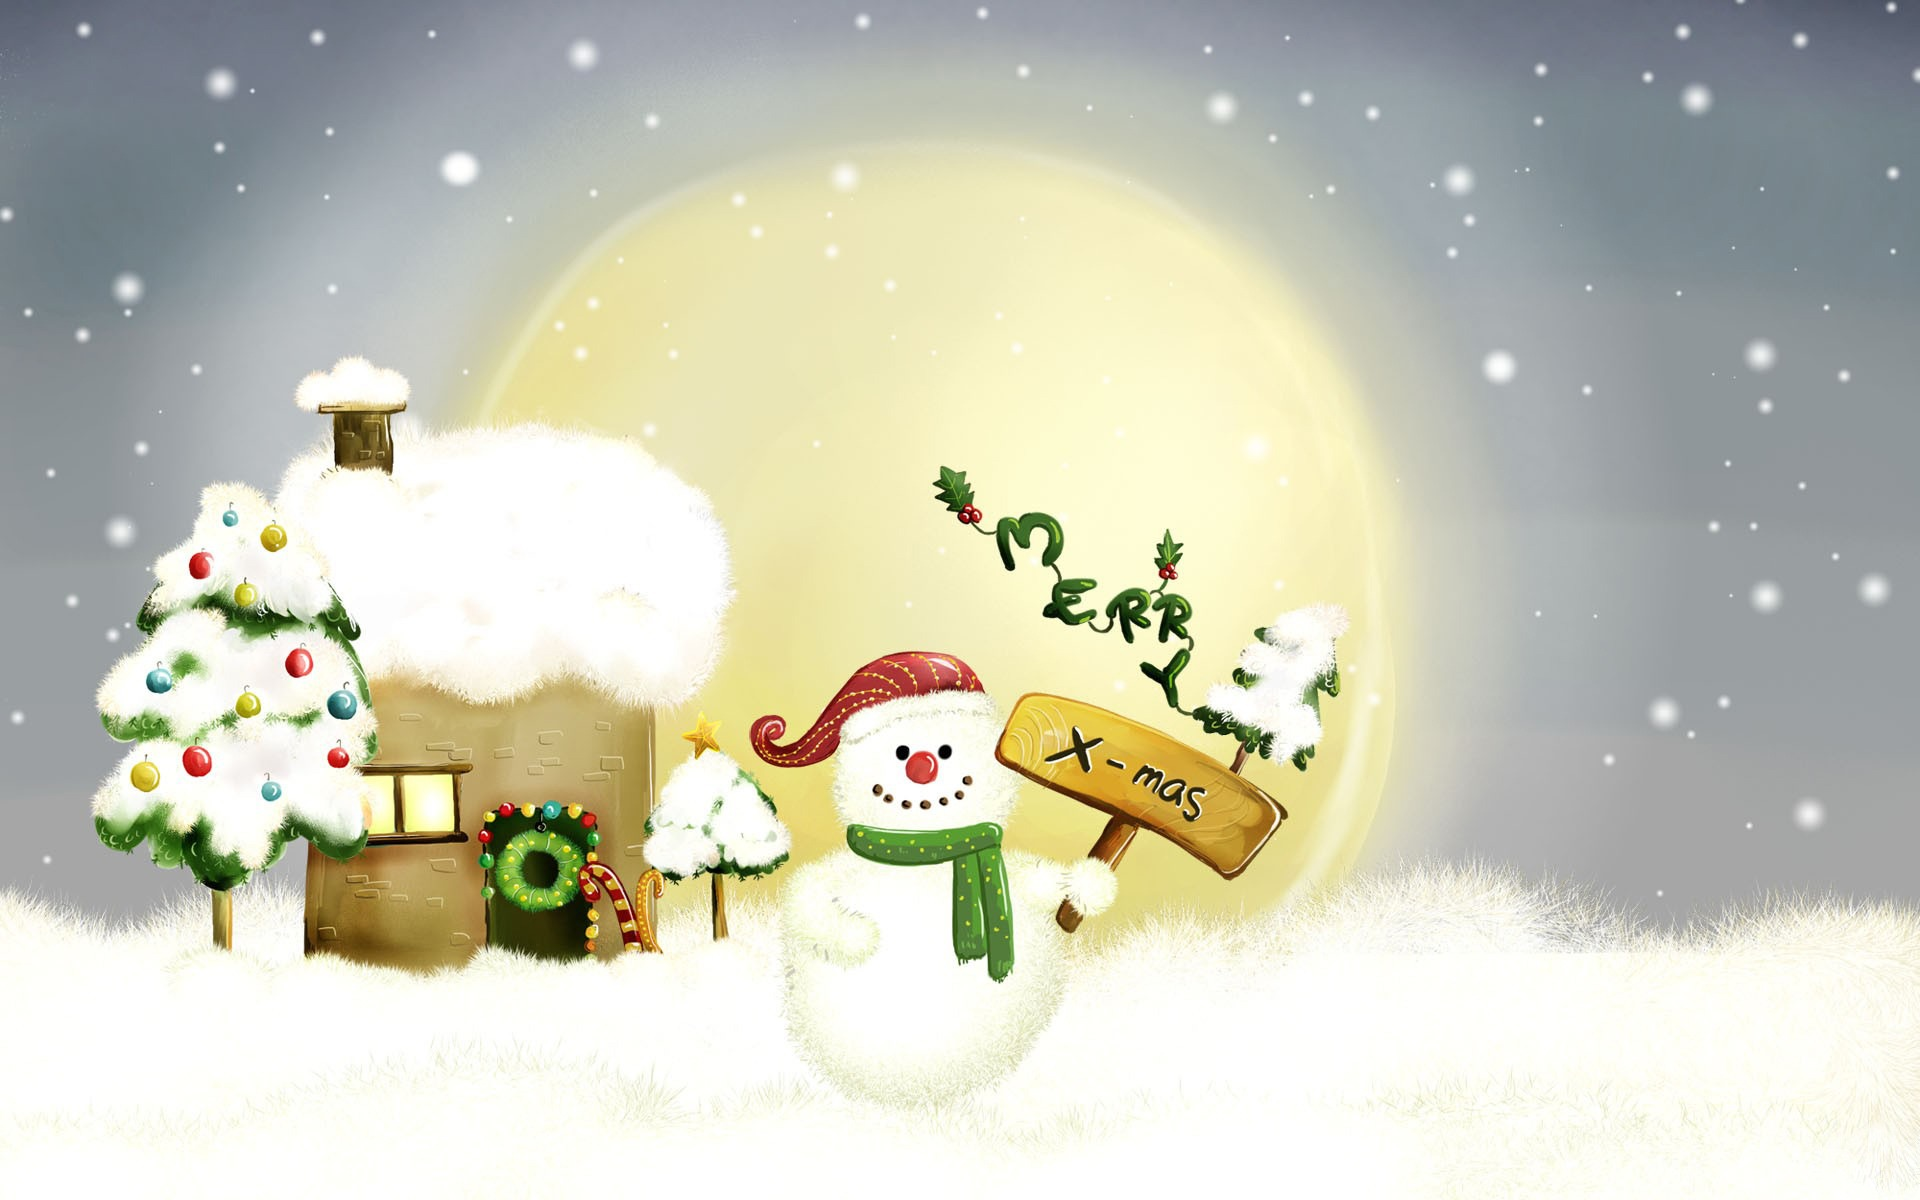 Merry Xmas Wallpaper Christmas Holidays Wallpapers in jpg format ...